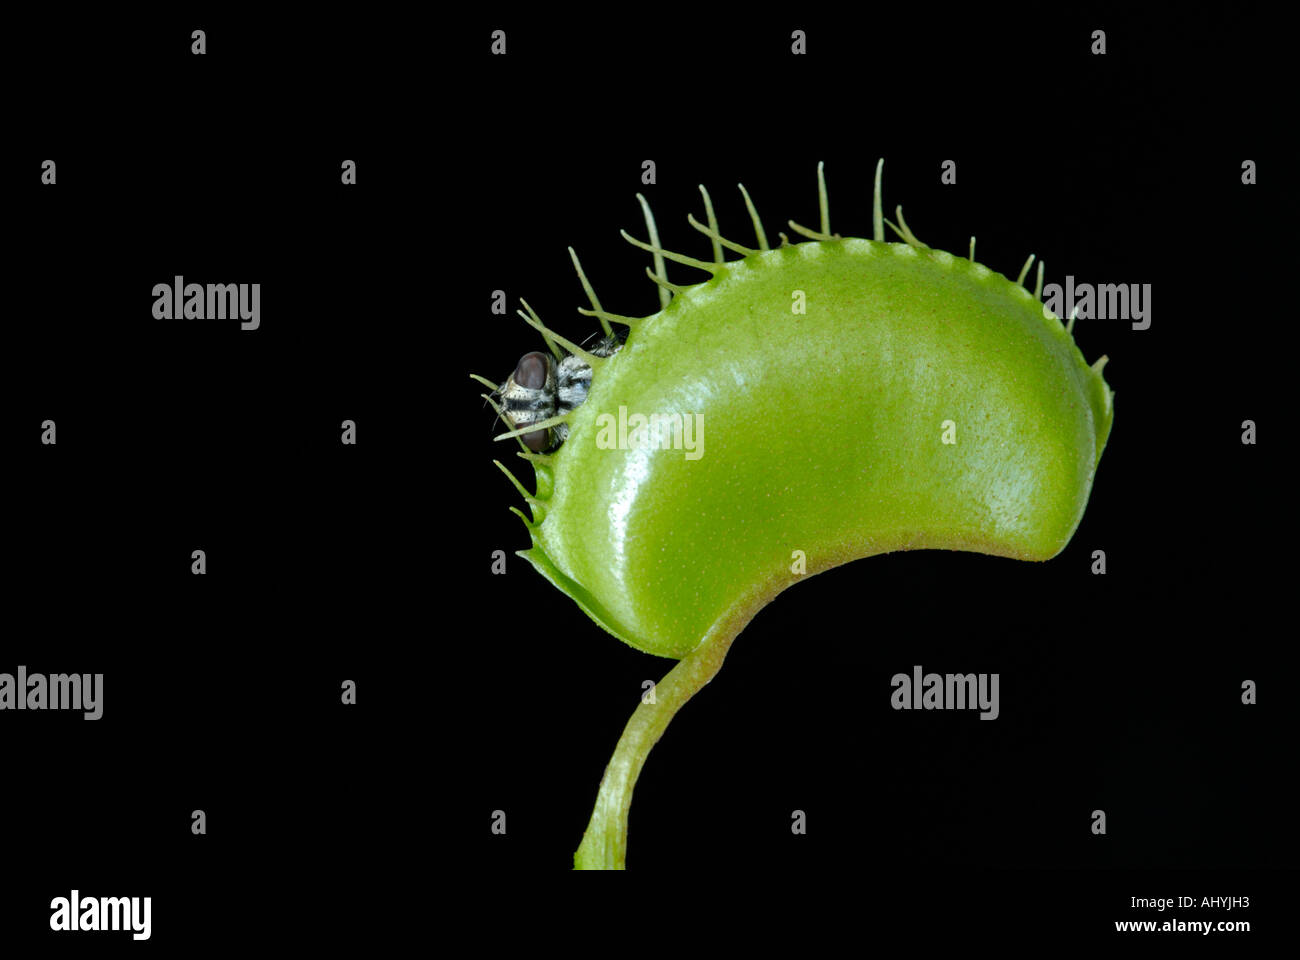 Venus flytrap, Dionaea muscipula, with trapped housefly - Stock Image